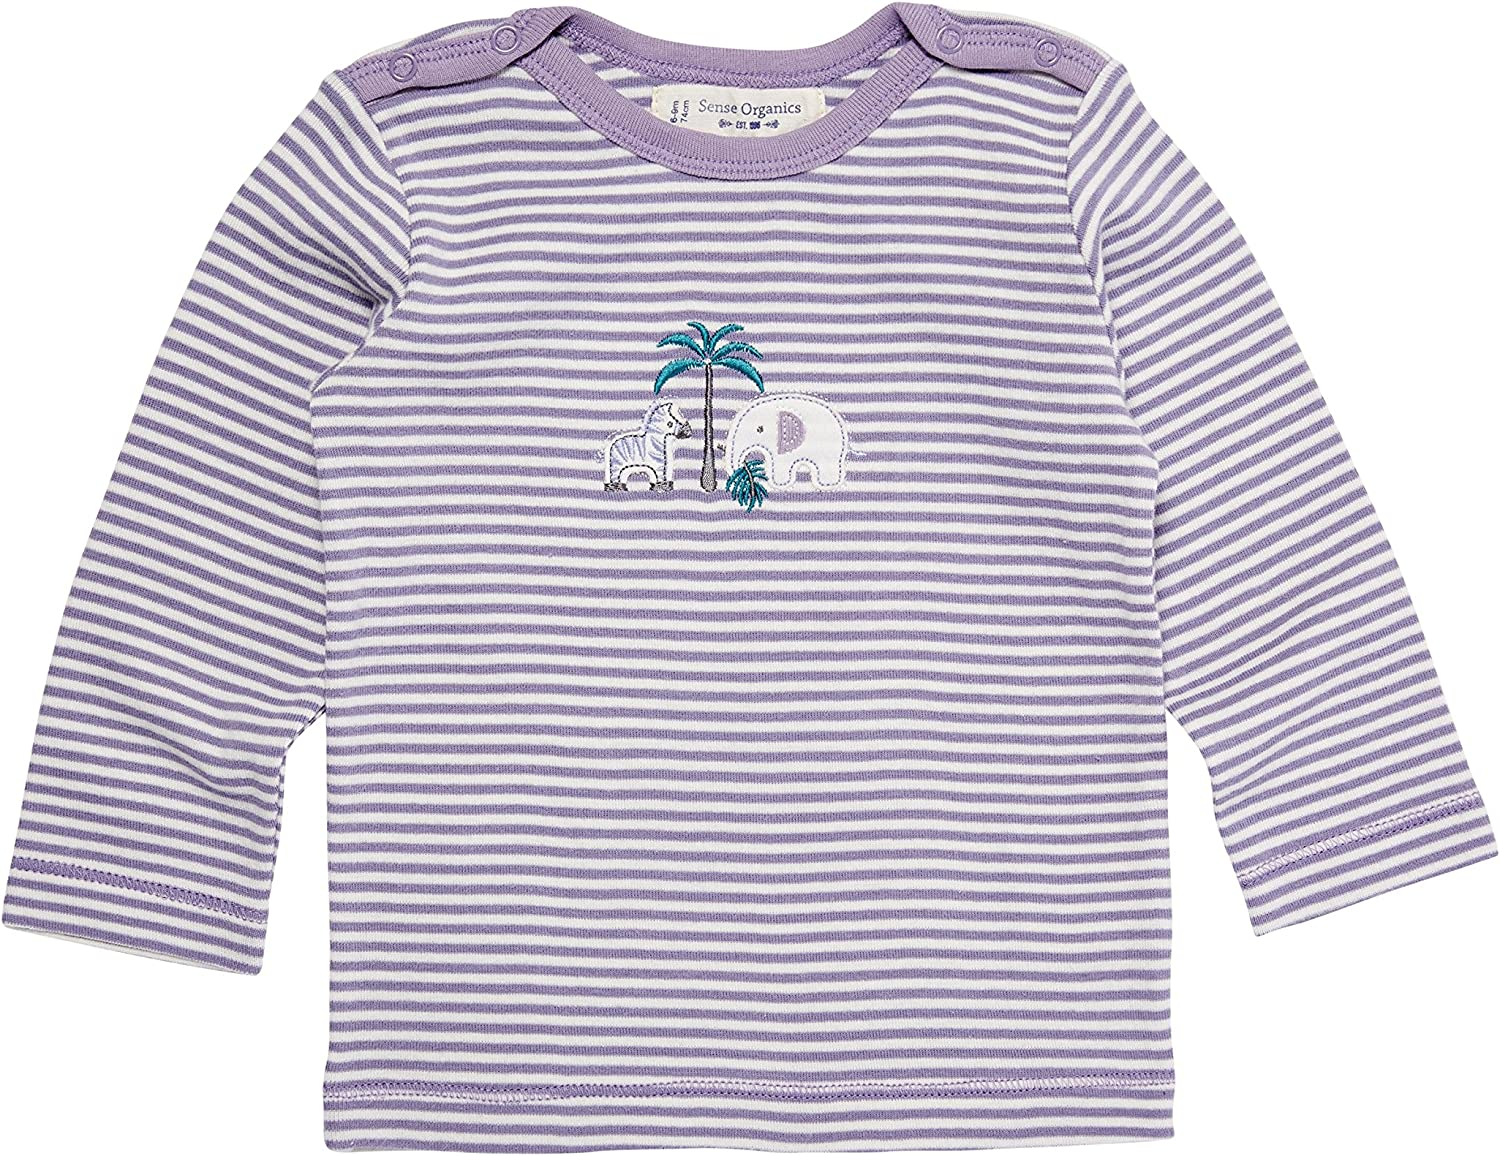 Ecoable Baby Essentials Long Sleeved Top Organic Cotton